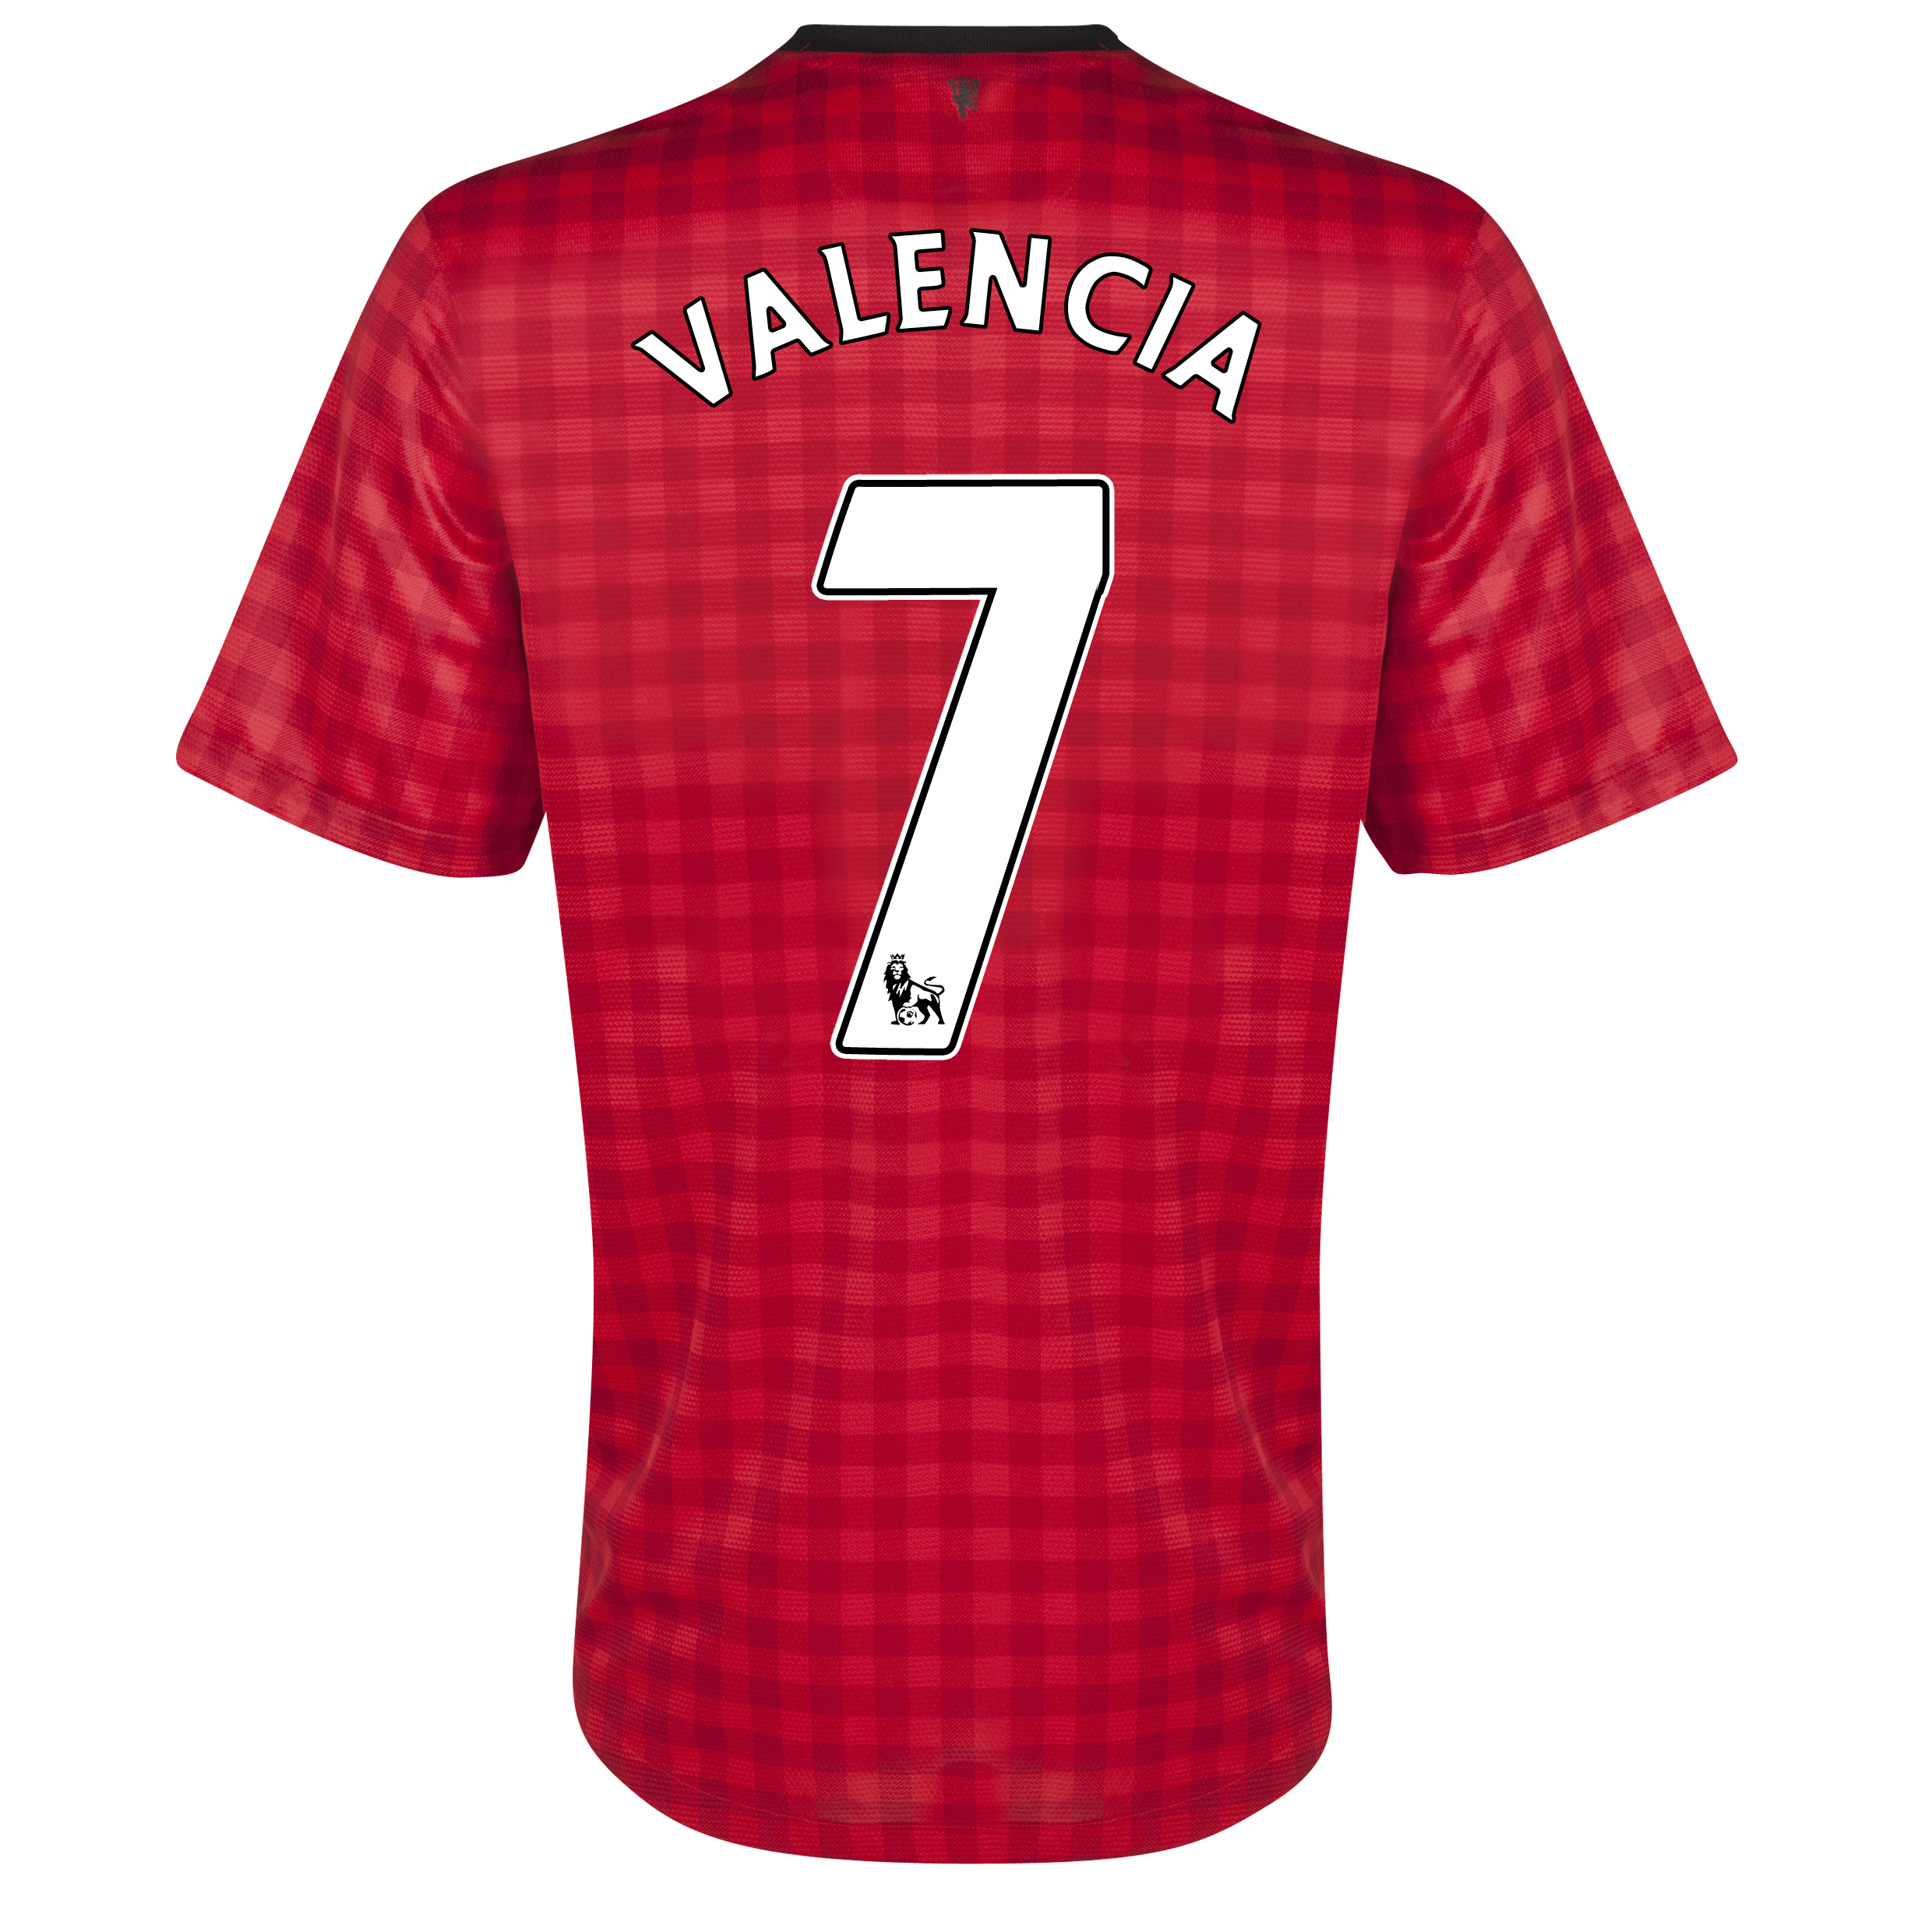 Manchester United Home Shirt 2012/13  - Youths with Valencia 7 printing